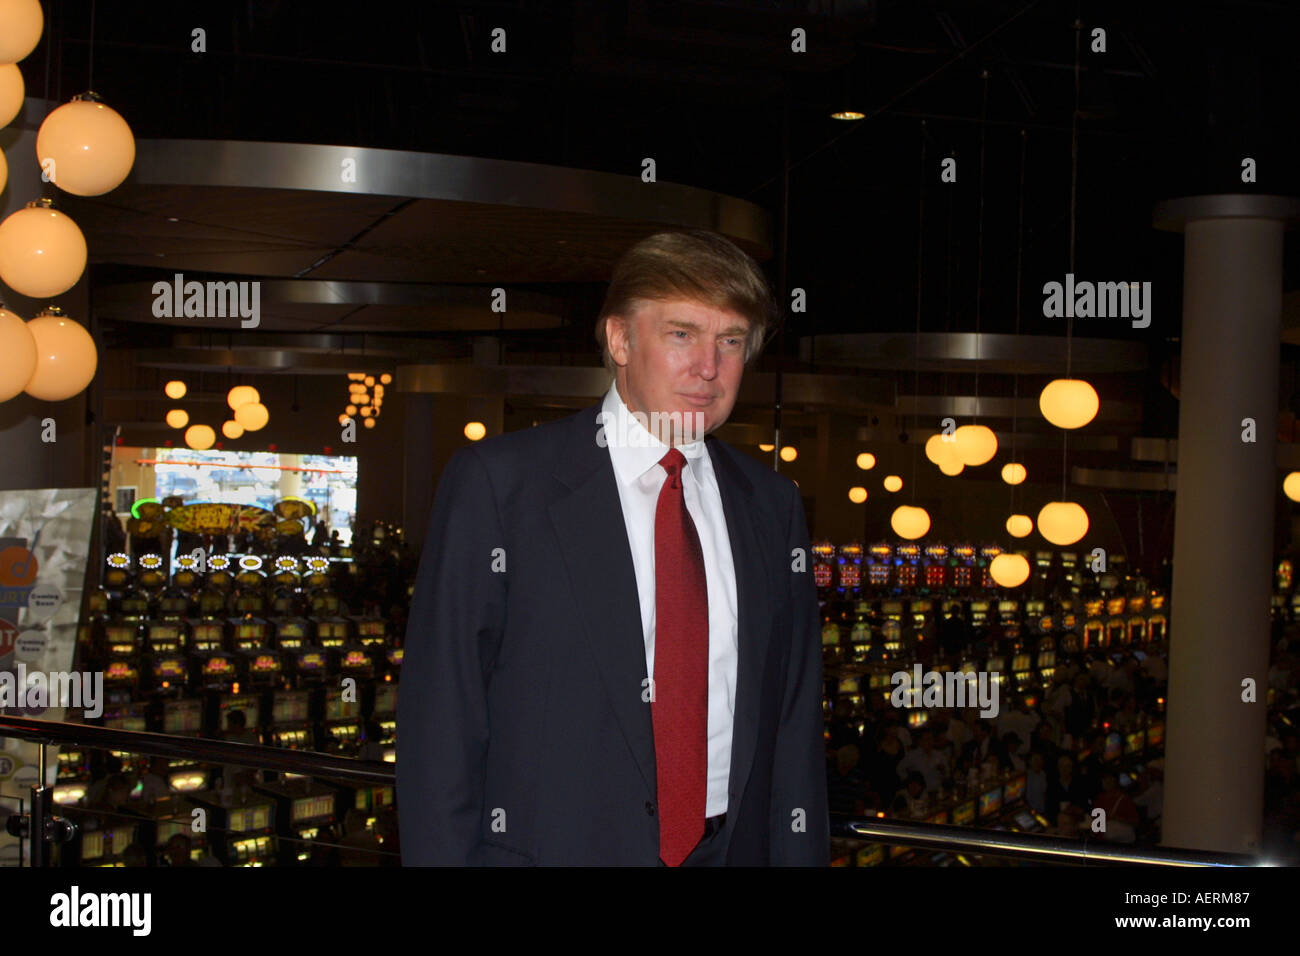 29 california casino trump linq casino games